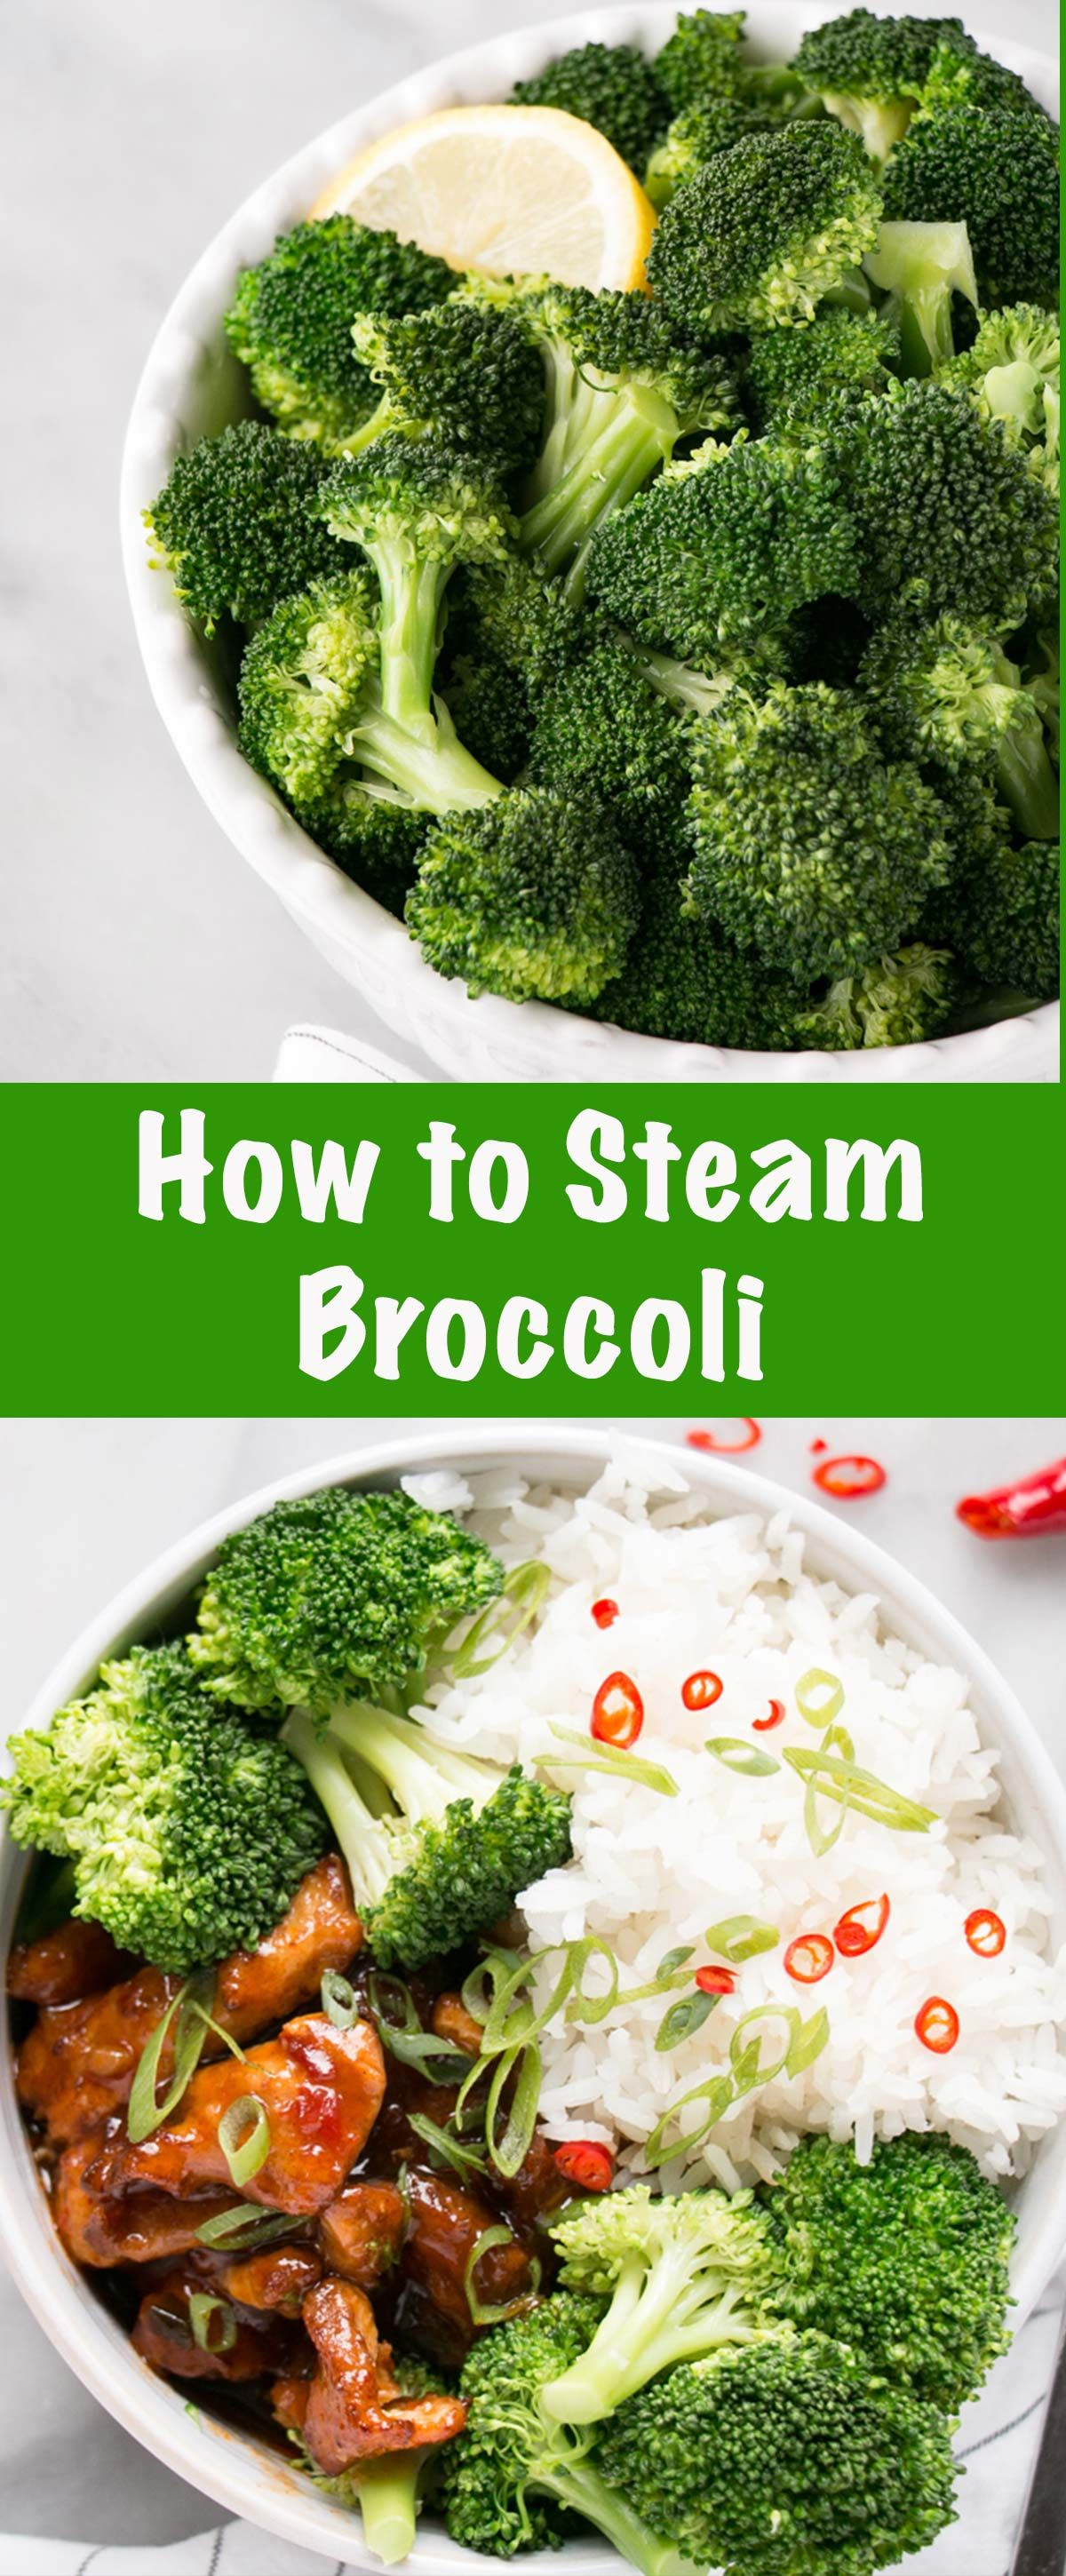 How To Steam Broccoli Without A Steamer Using Either A Stove Top Or A Microwave This Is A Co Broccoli Side Dish Steamed Broccoli Vegetable Side Dishes Recipes